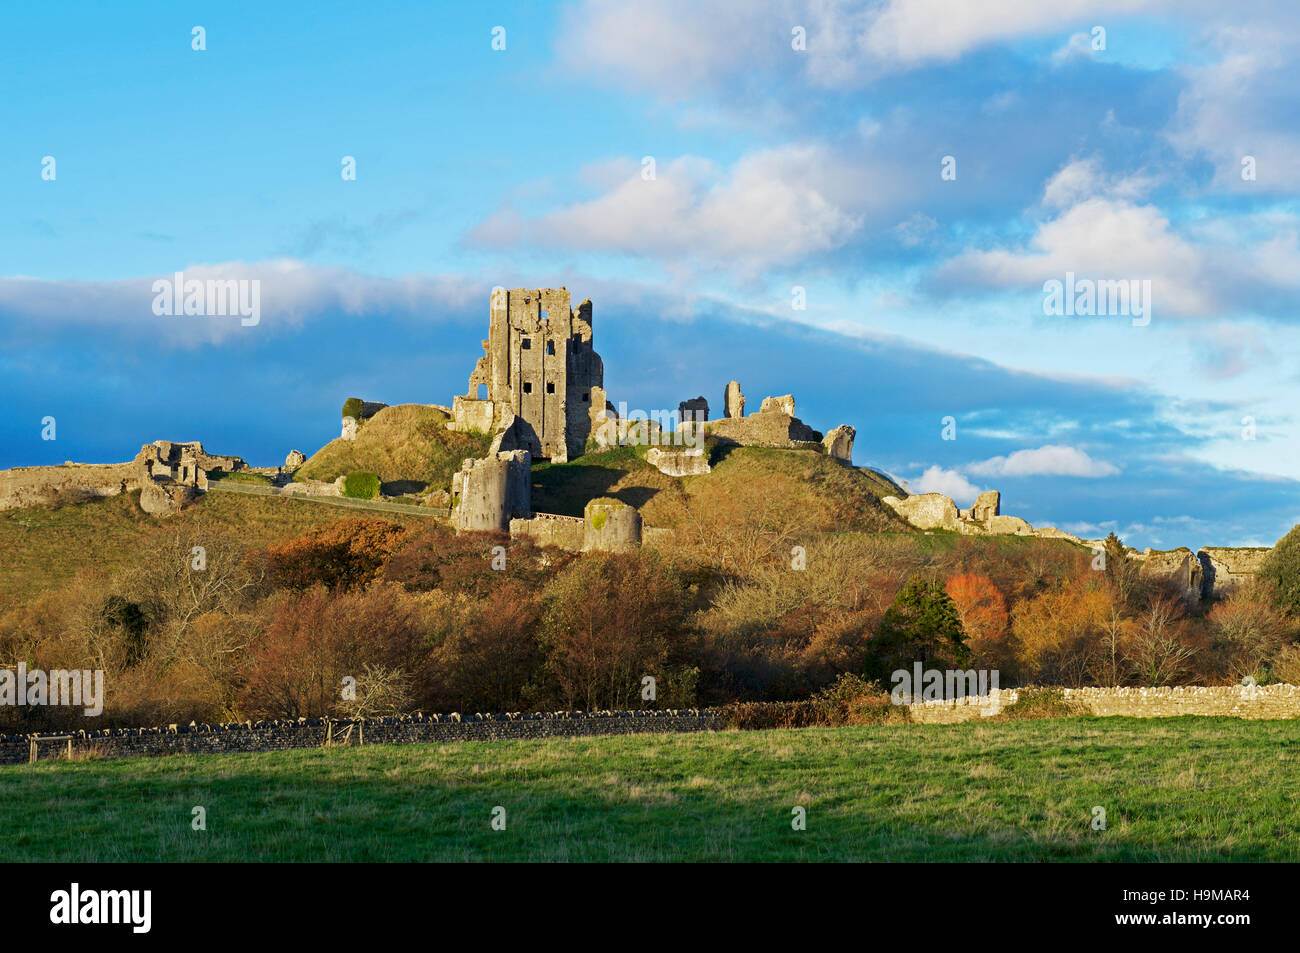 Corfe Castle, Isle of Purbeck, Dorset, England UK - Stock Image